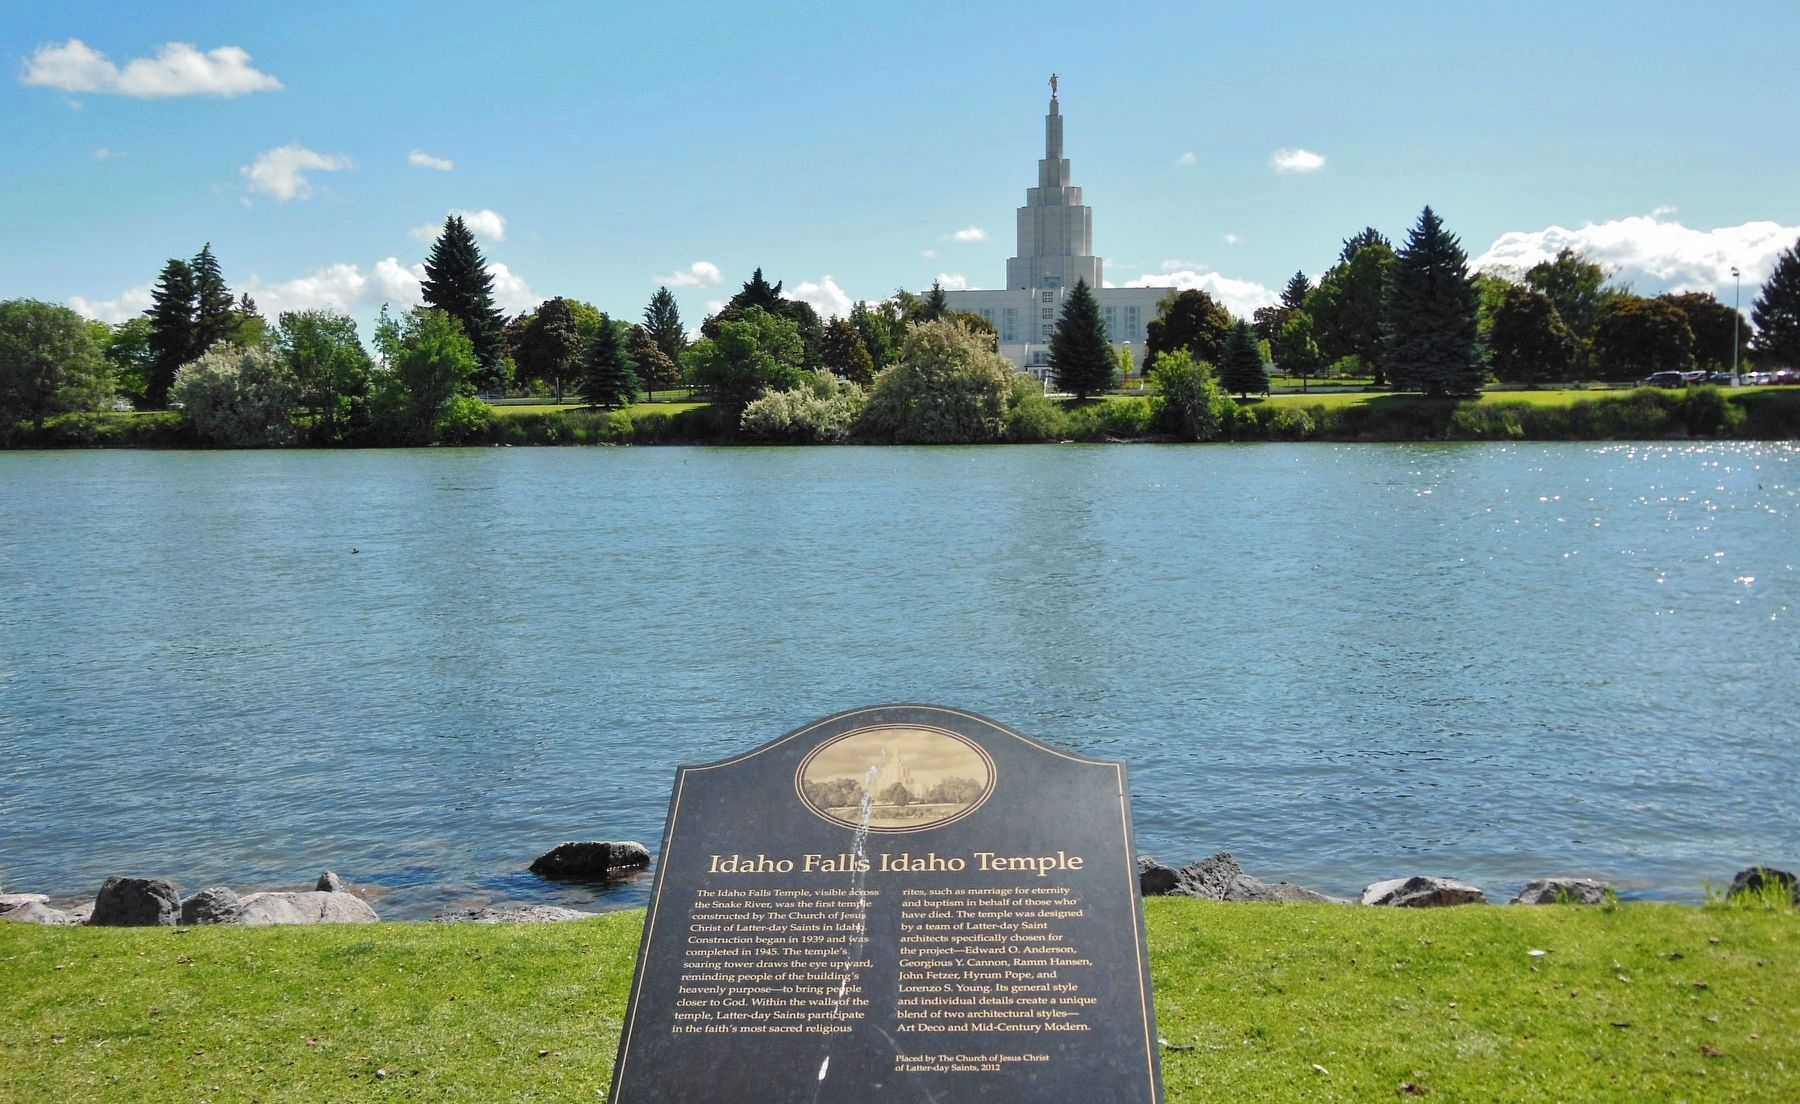 Idaho Falls Idaho Temple Marker (<i>wide view with Temple in the background</i>) image. Click for full size.